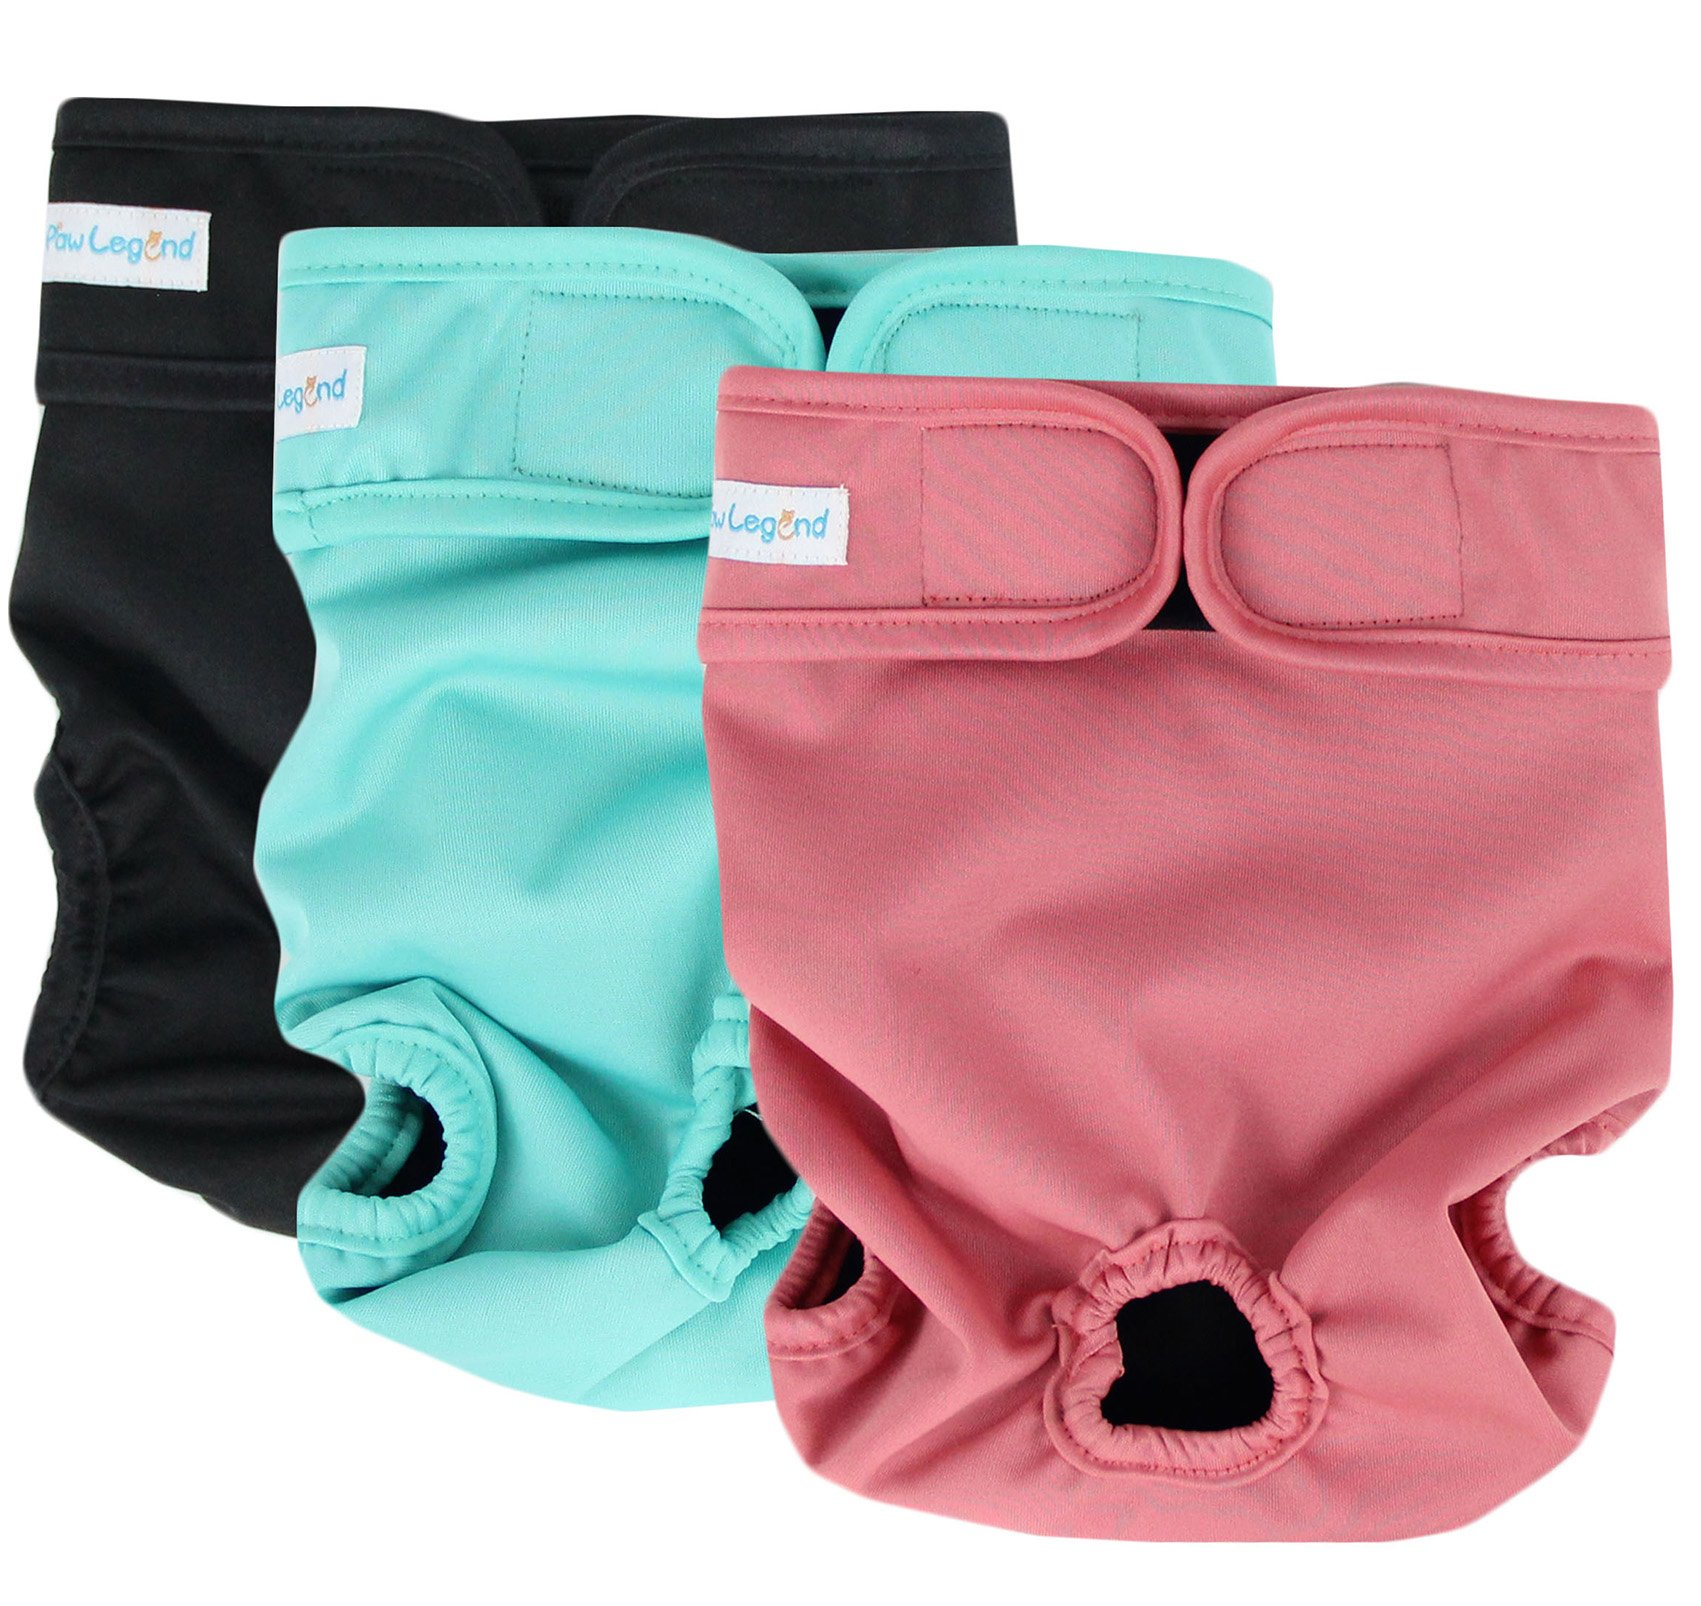 Paw Legend Reusable Female Diapers